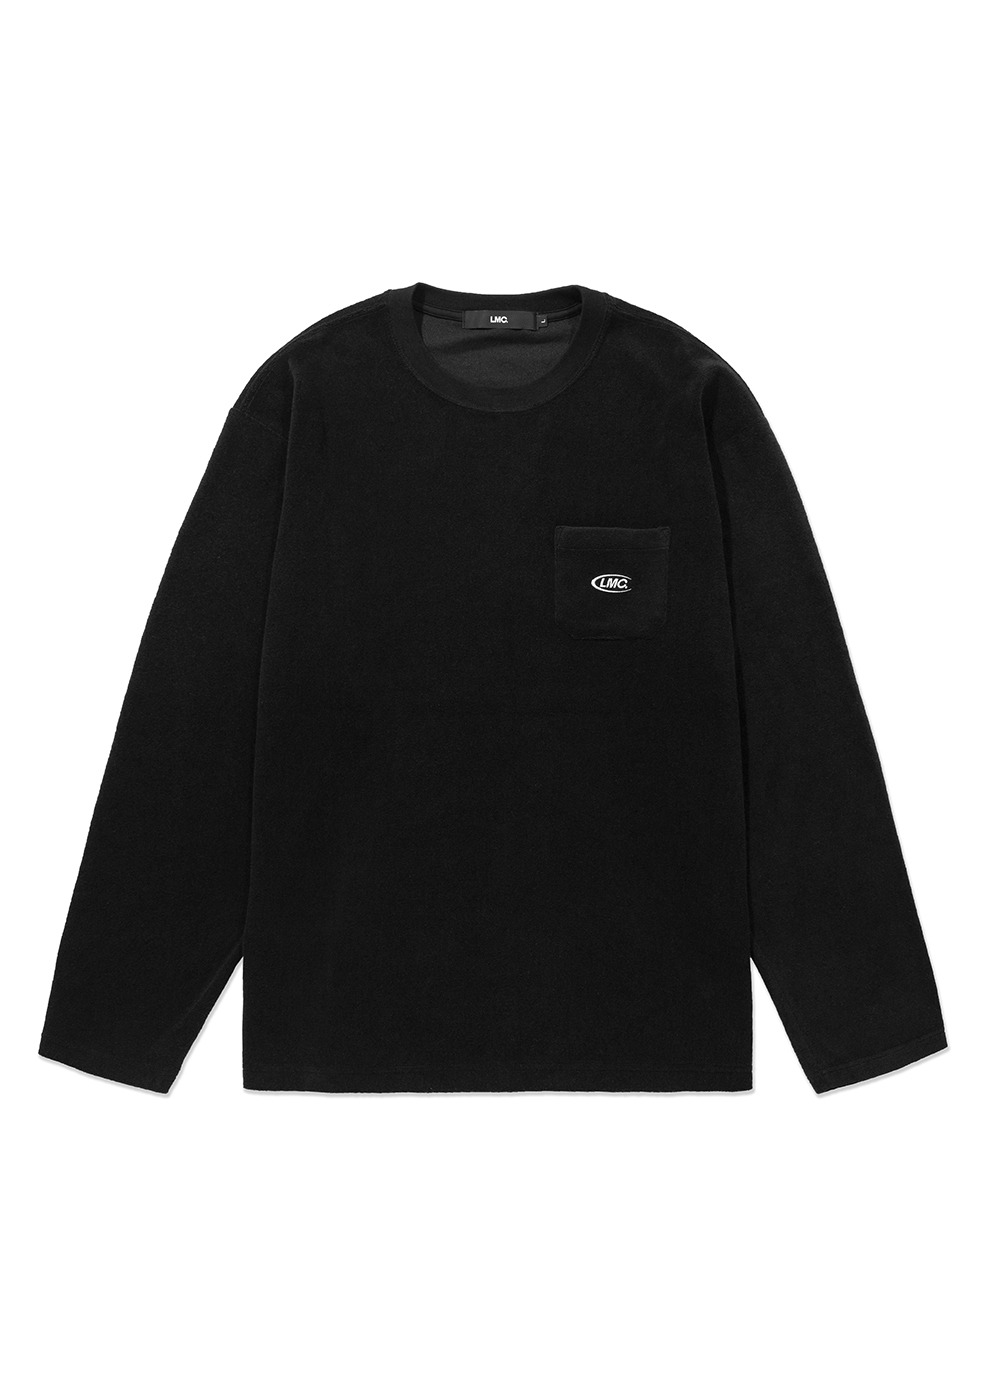 LMC TERRY POCKET LONG SLV TEE black